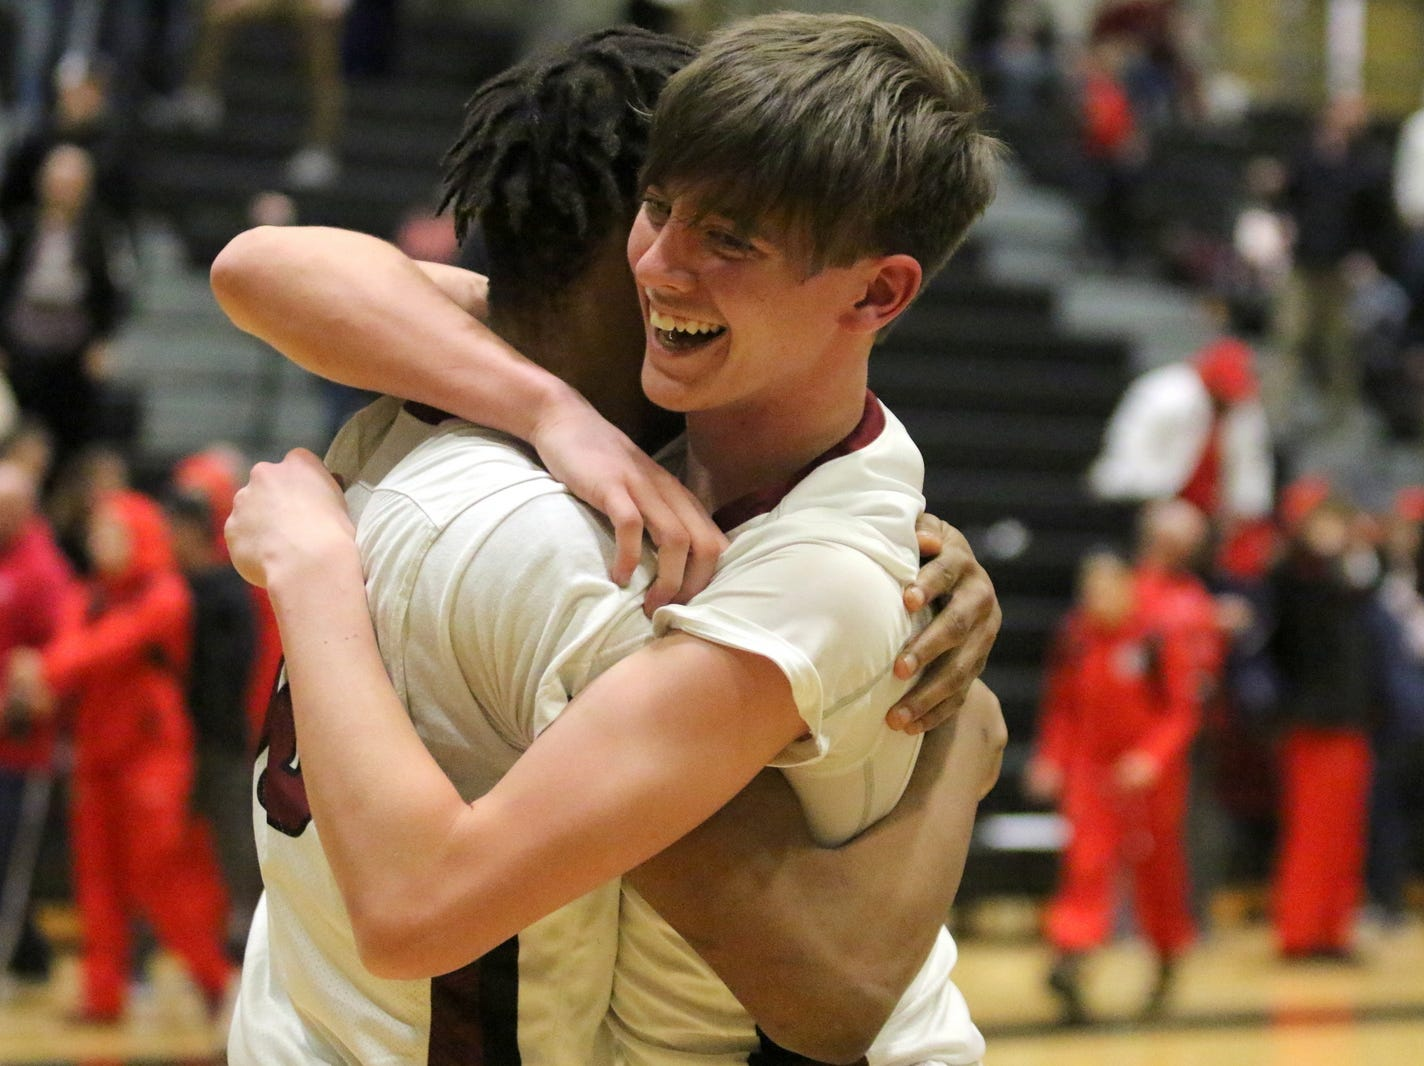 Photos from the Section 4 Class AA boys basketball final between Elmira and Binghamton on March 1, 2019 at Corning-Painted Post High School.